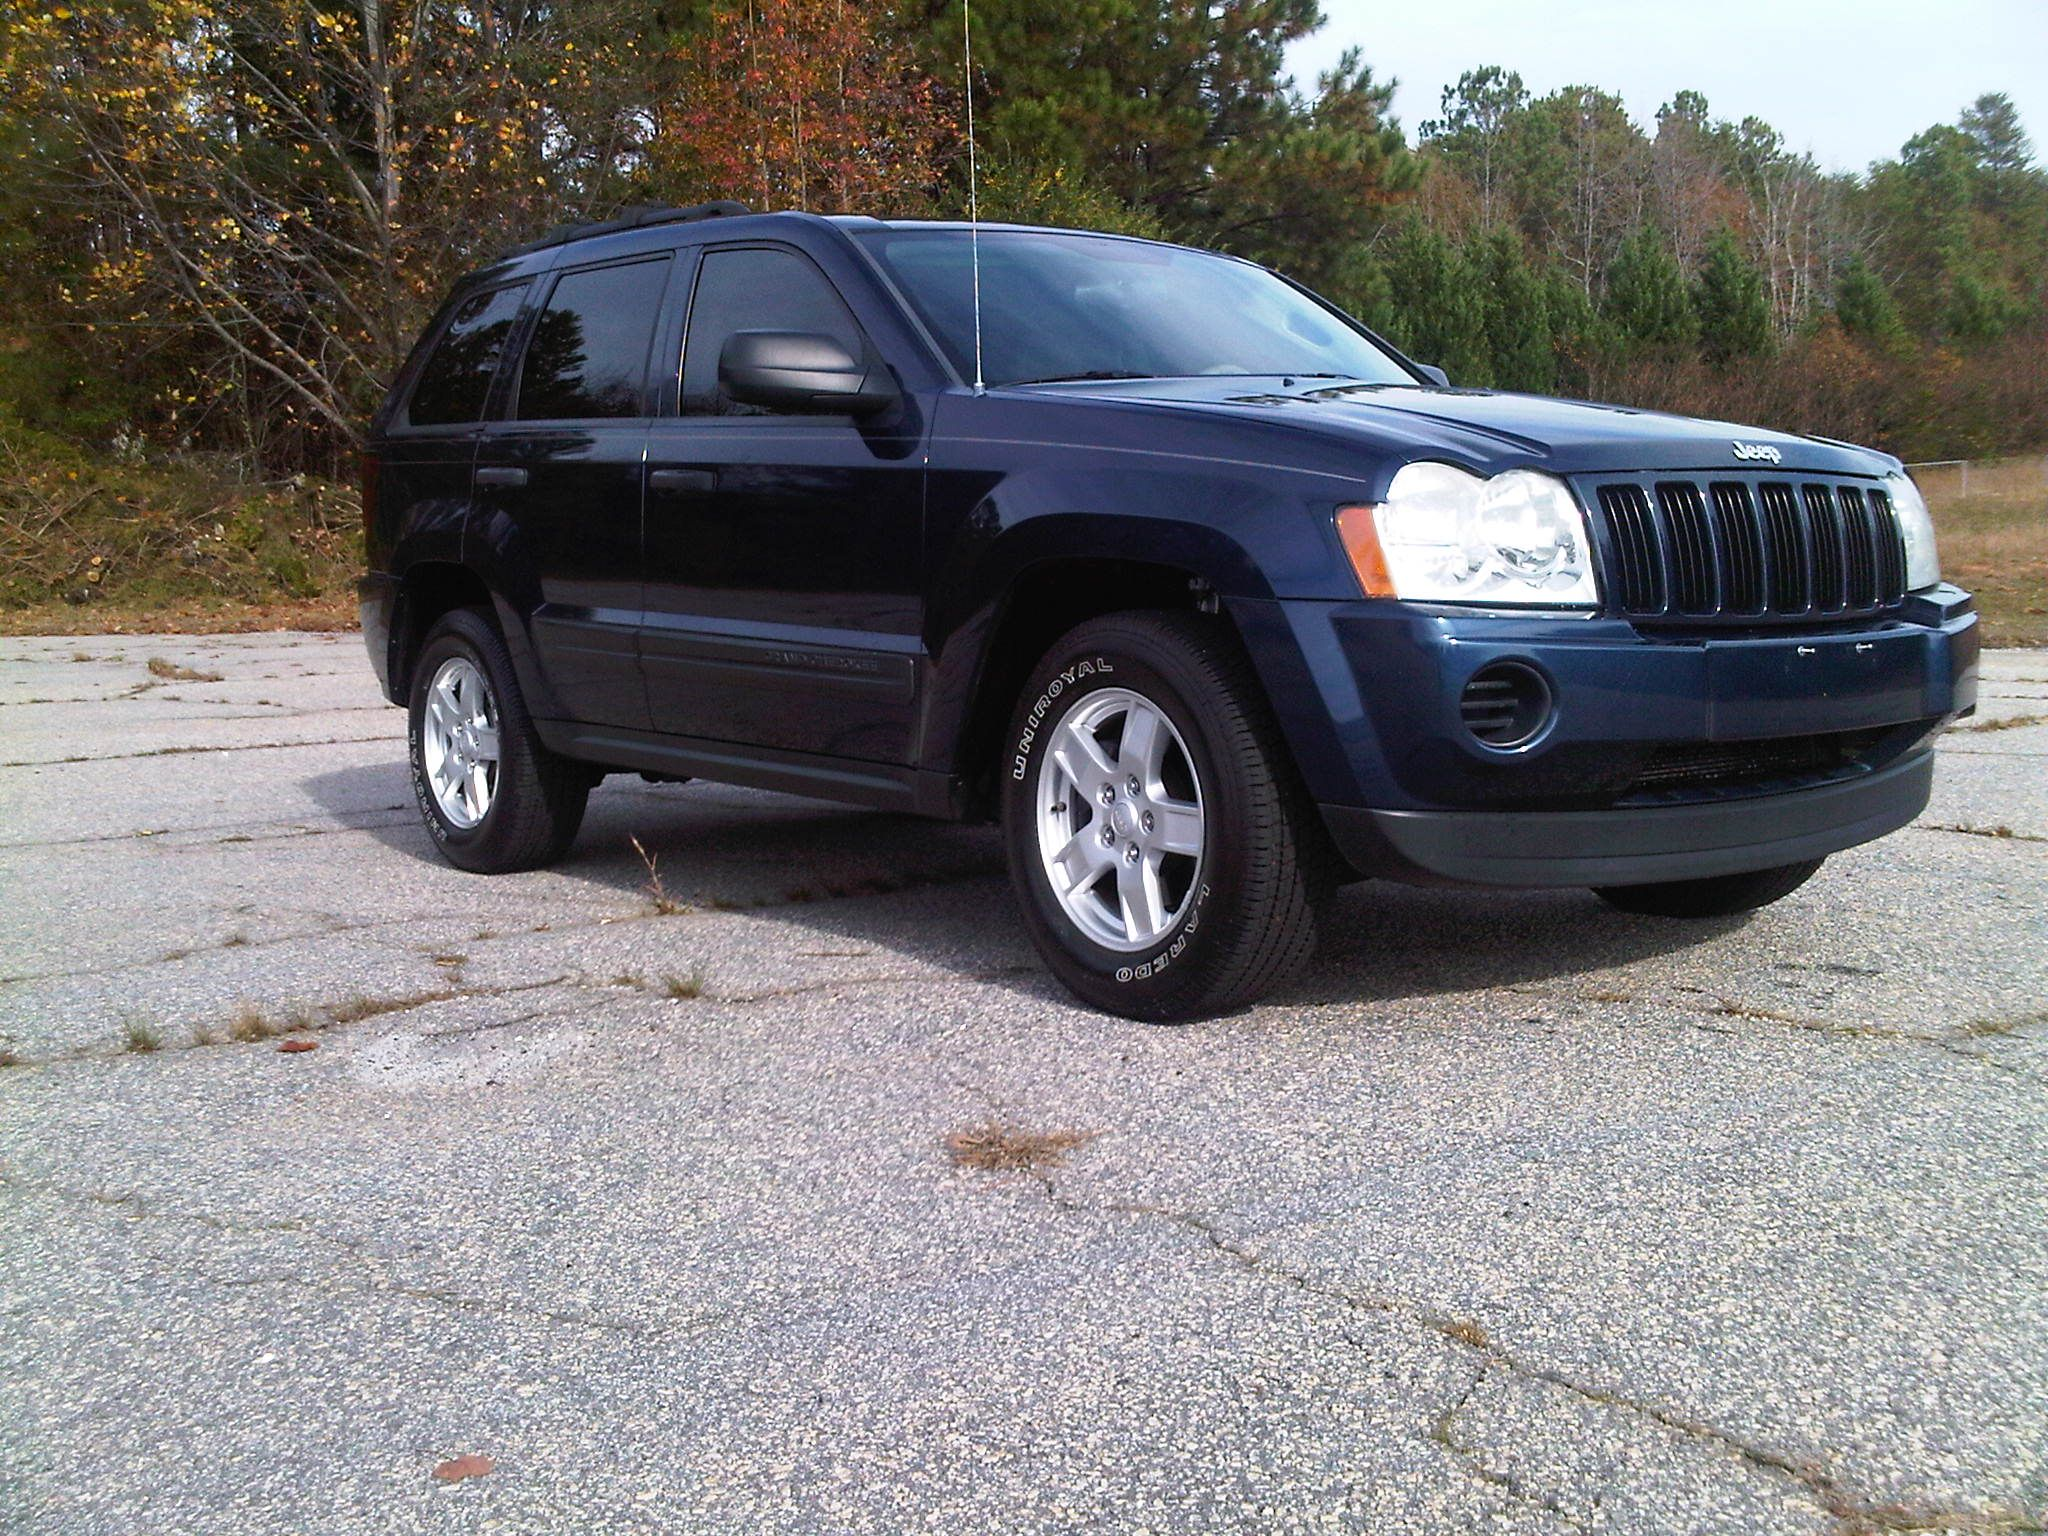 Used Car For Sale By Owner 2005 Jeep Grand Cherokee Laredo Suv